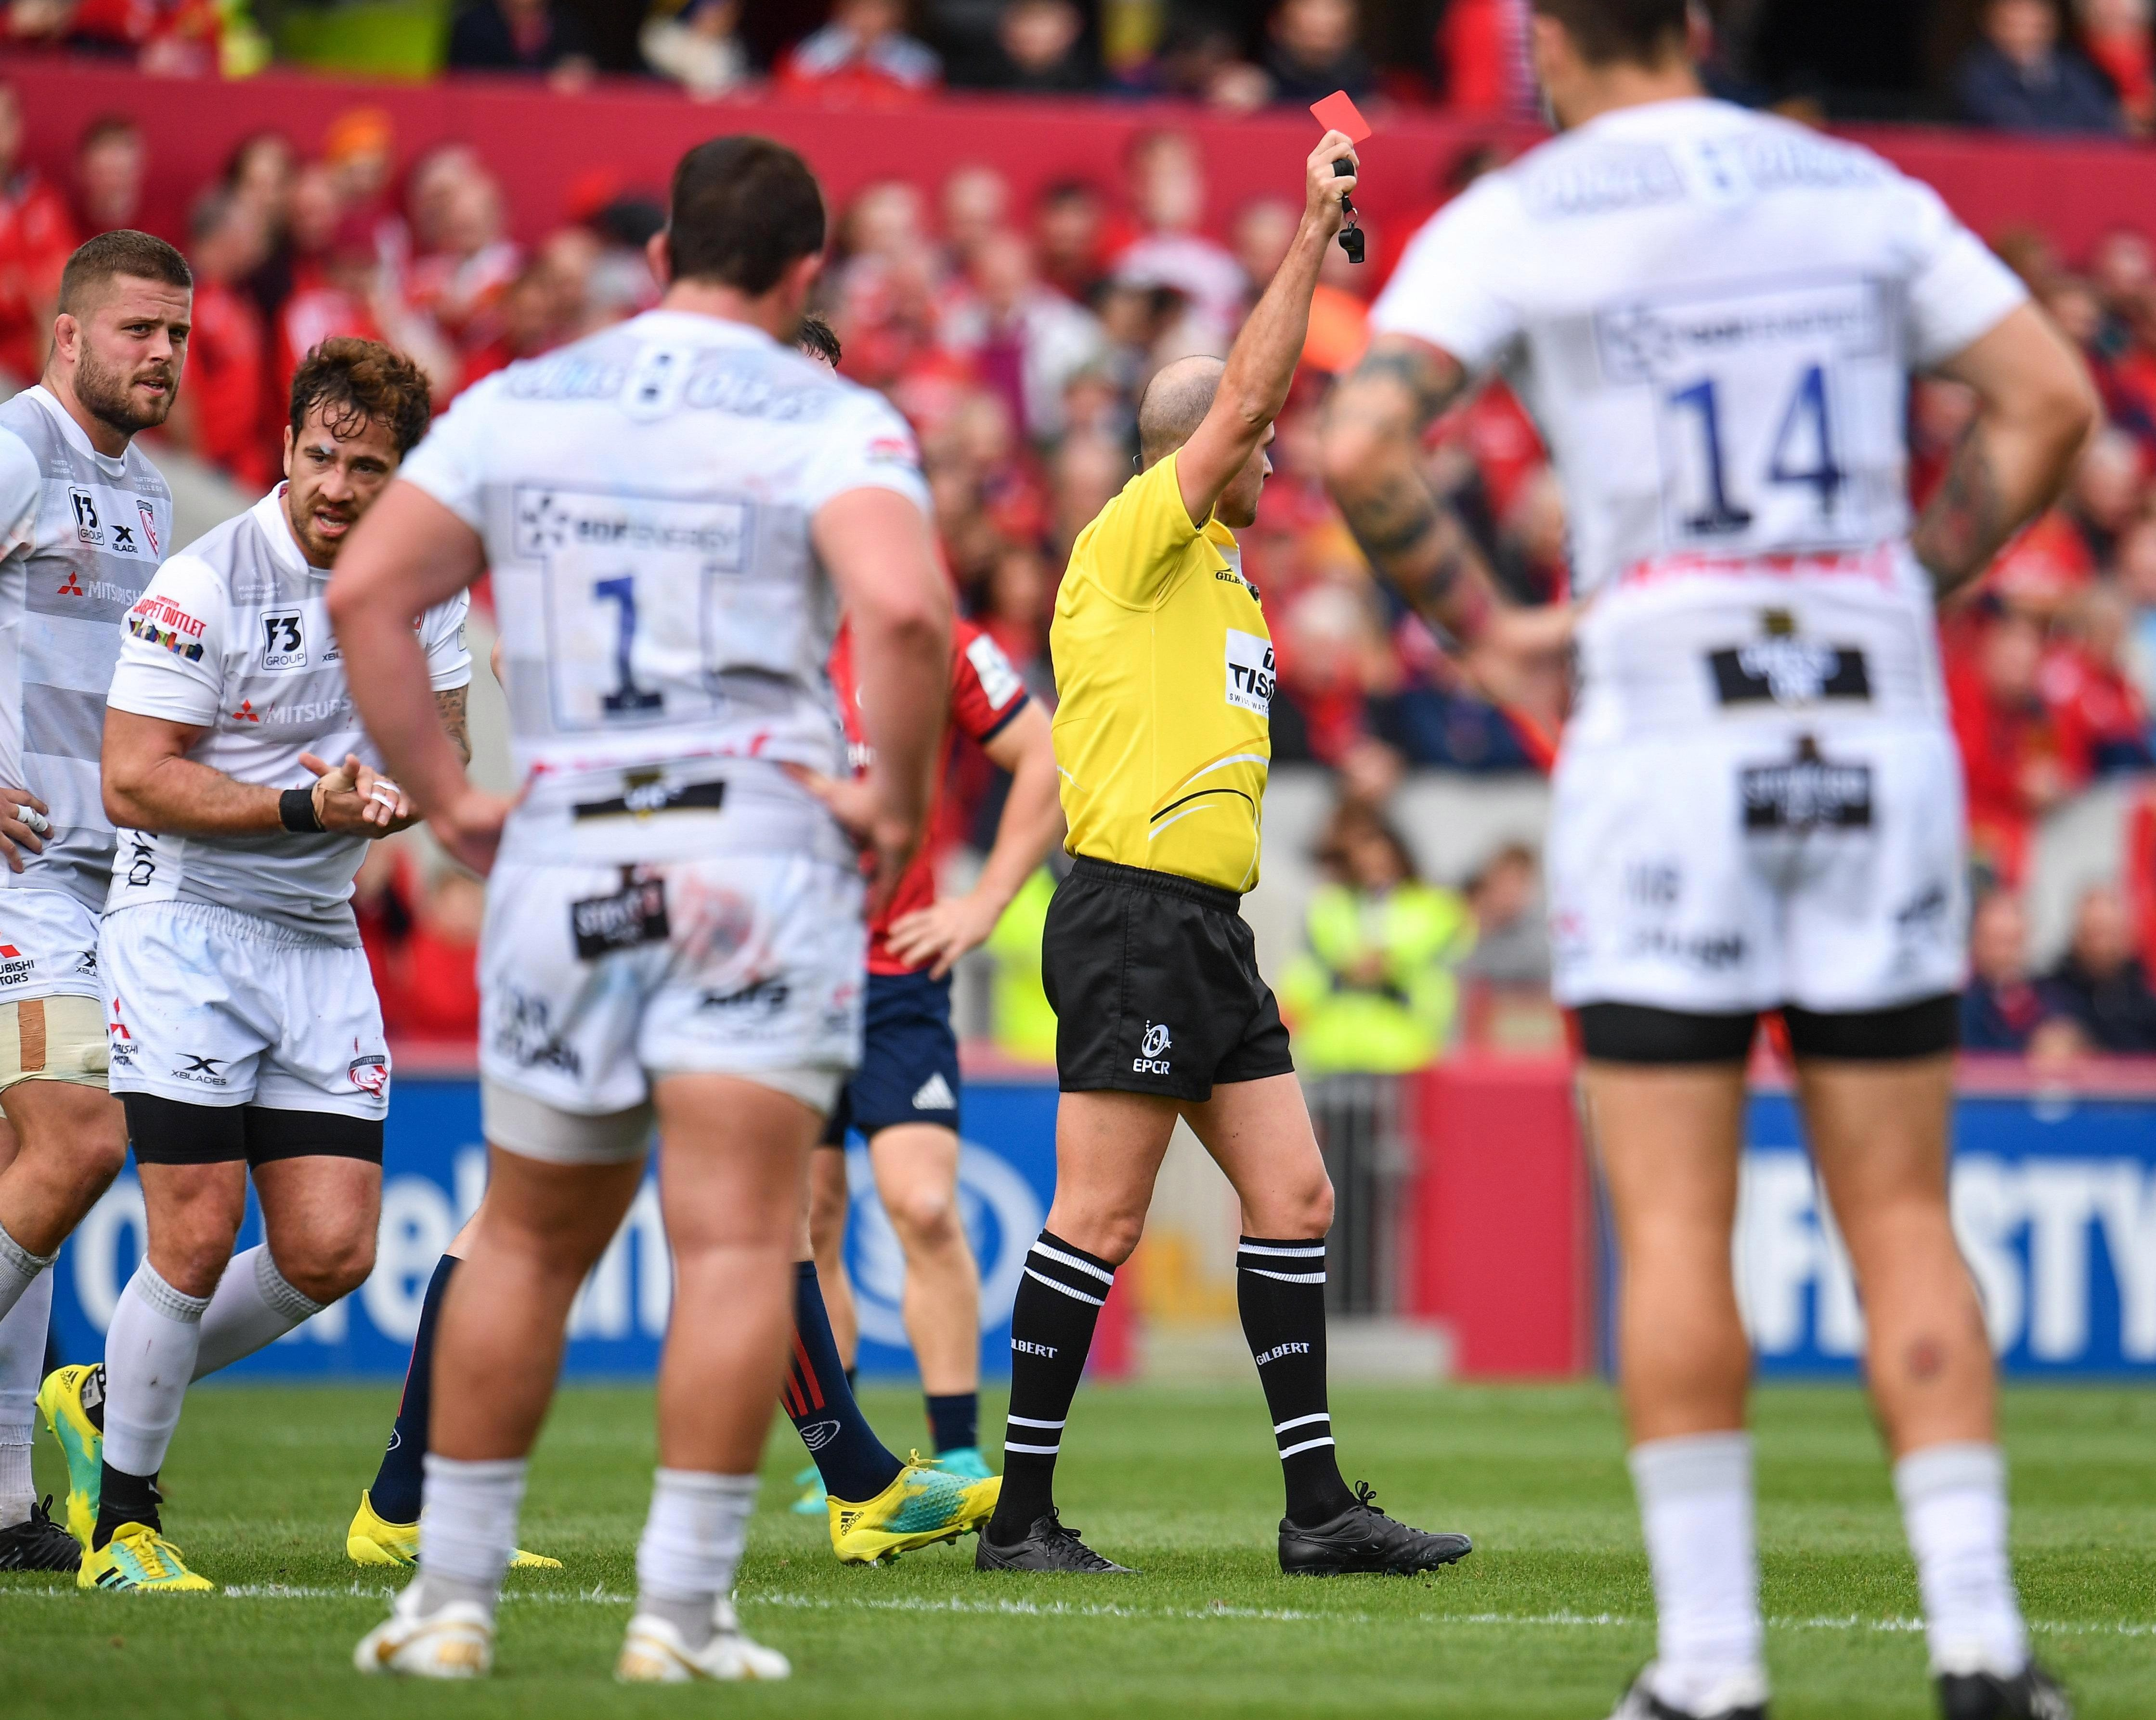 Referee Alexandre Ruiz had no choice but to send Cipriani off under new guidelines from World Rugby